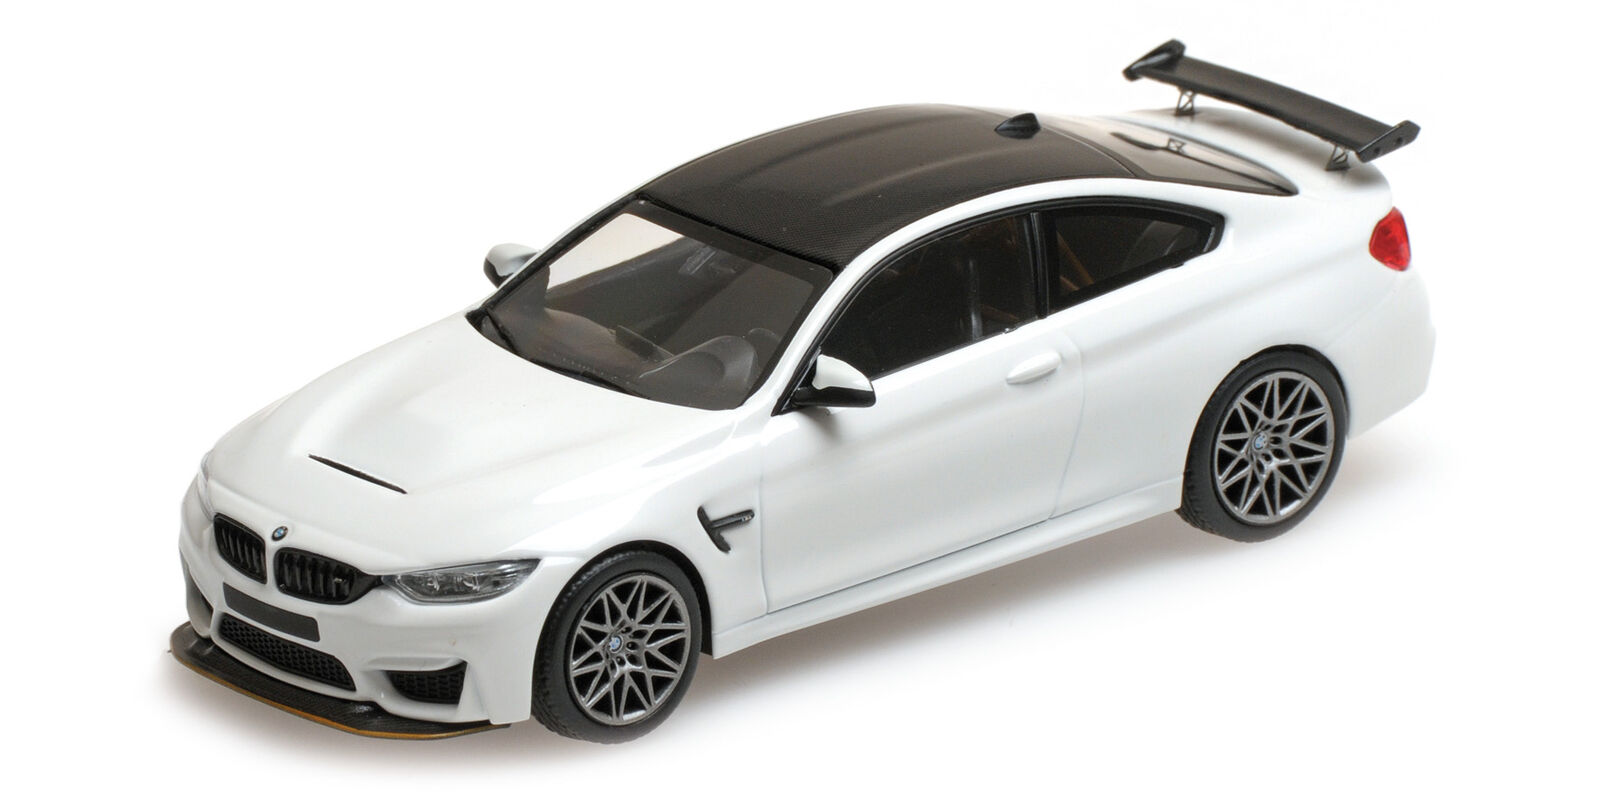 Bmw M4 Gts 2016  White W  Grey Grey Grey Wheels L.E. 336 Pcs. MINICHAMPS 1 43 410025221 Mo b24352